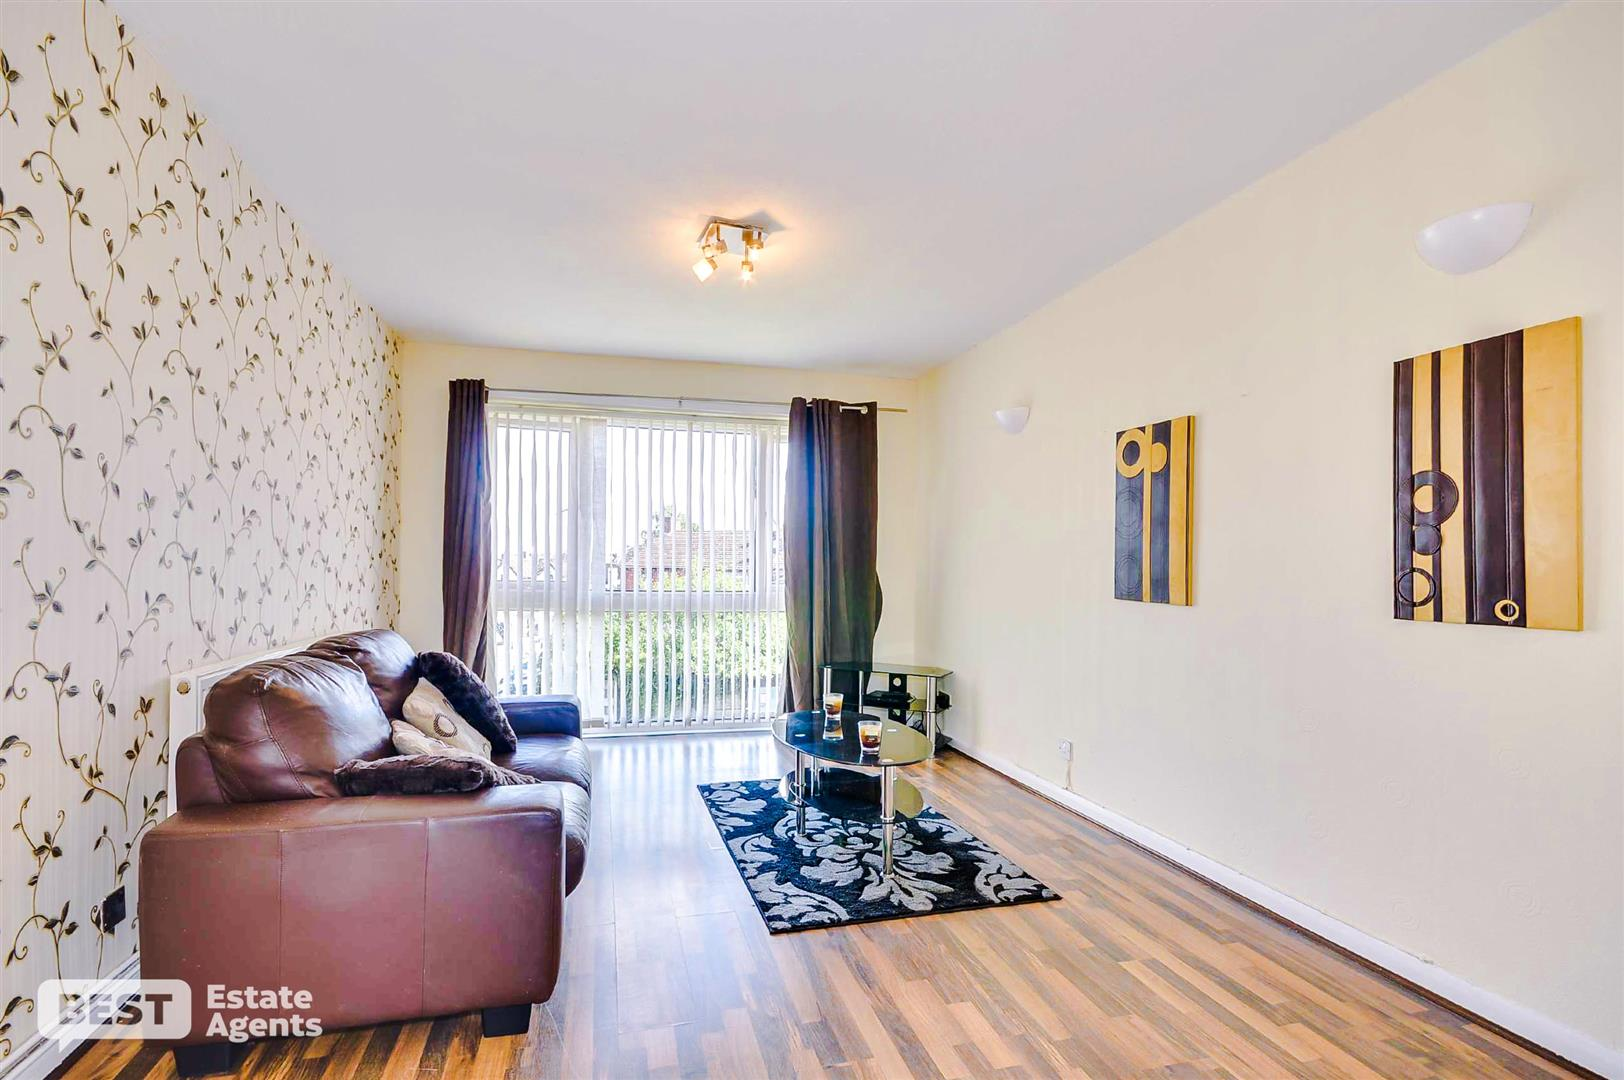 Bolton Road, Atherton, Greater Manchester BEST Estate Agents